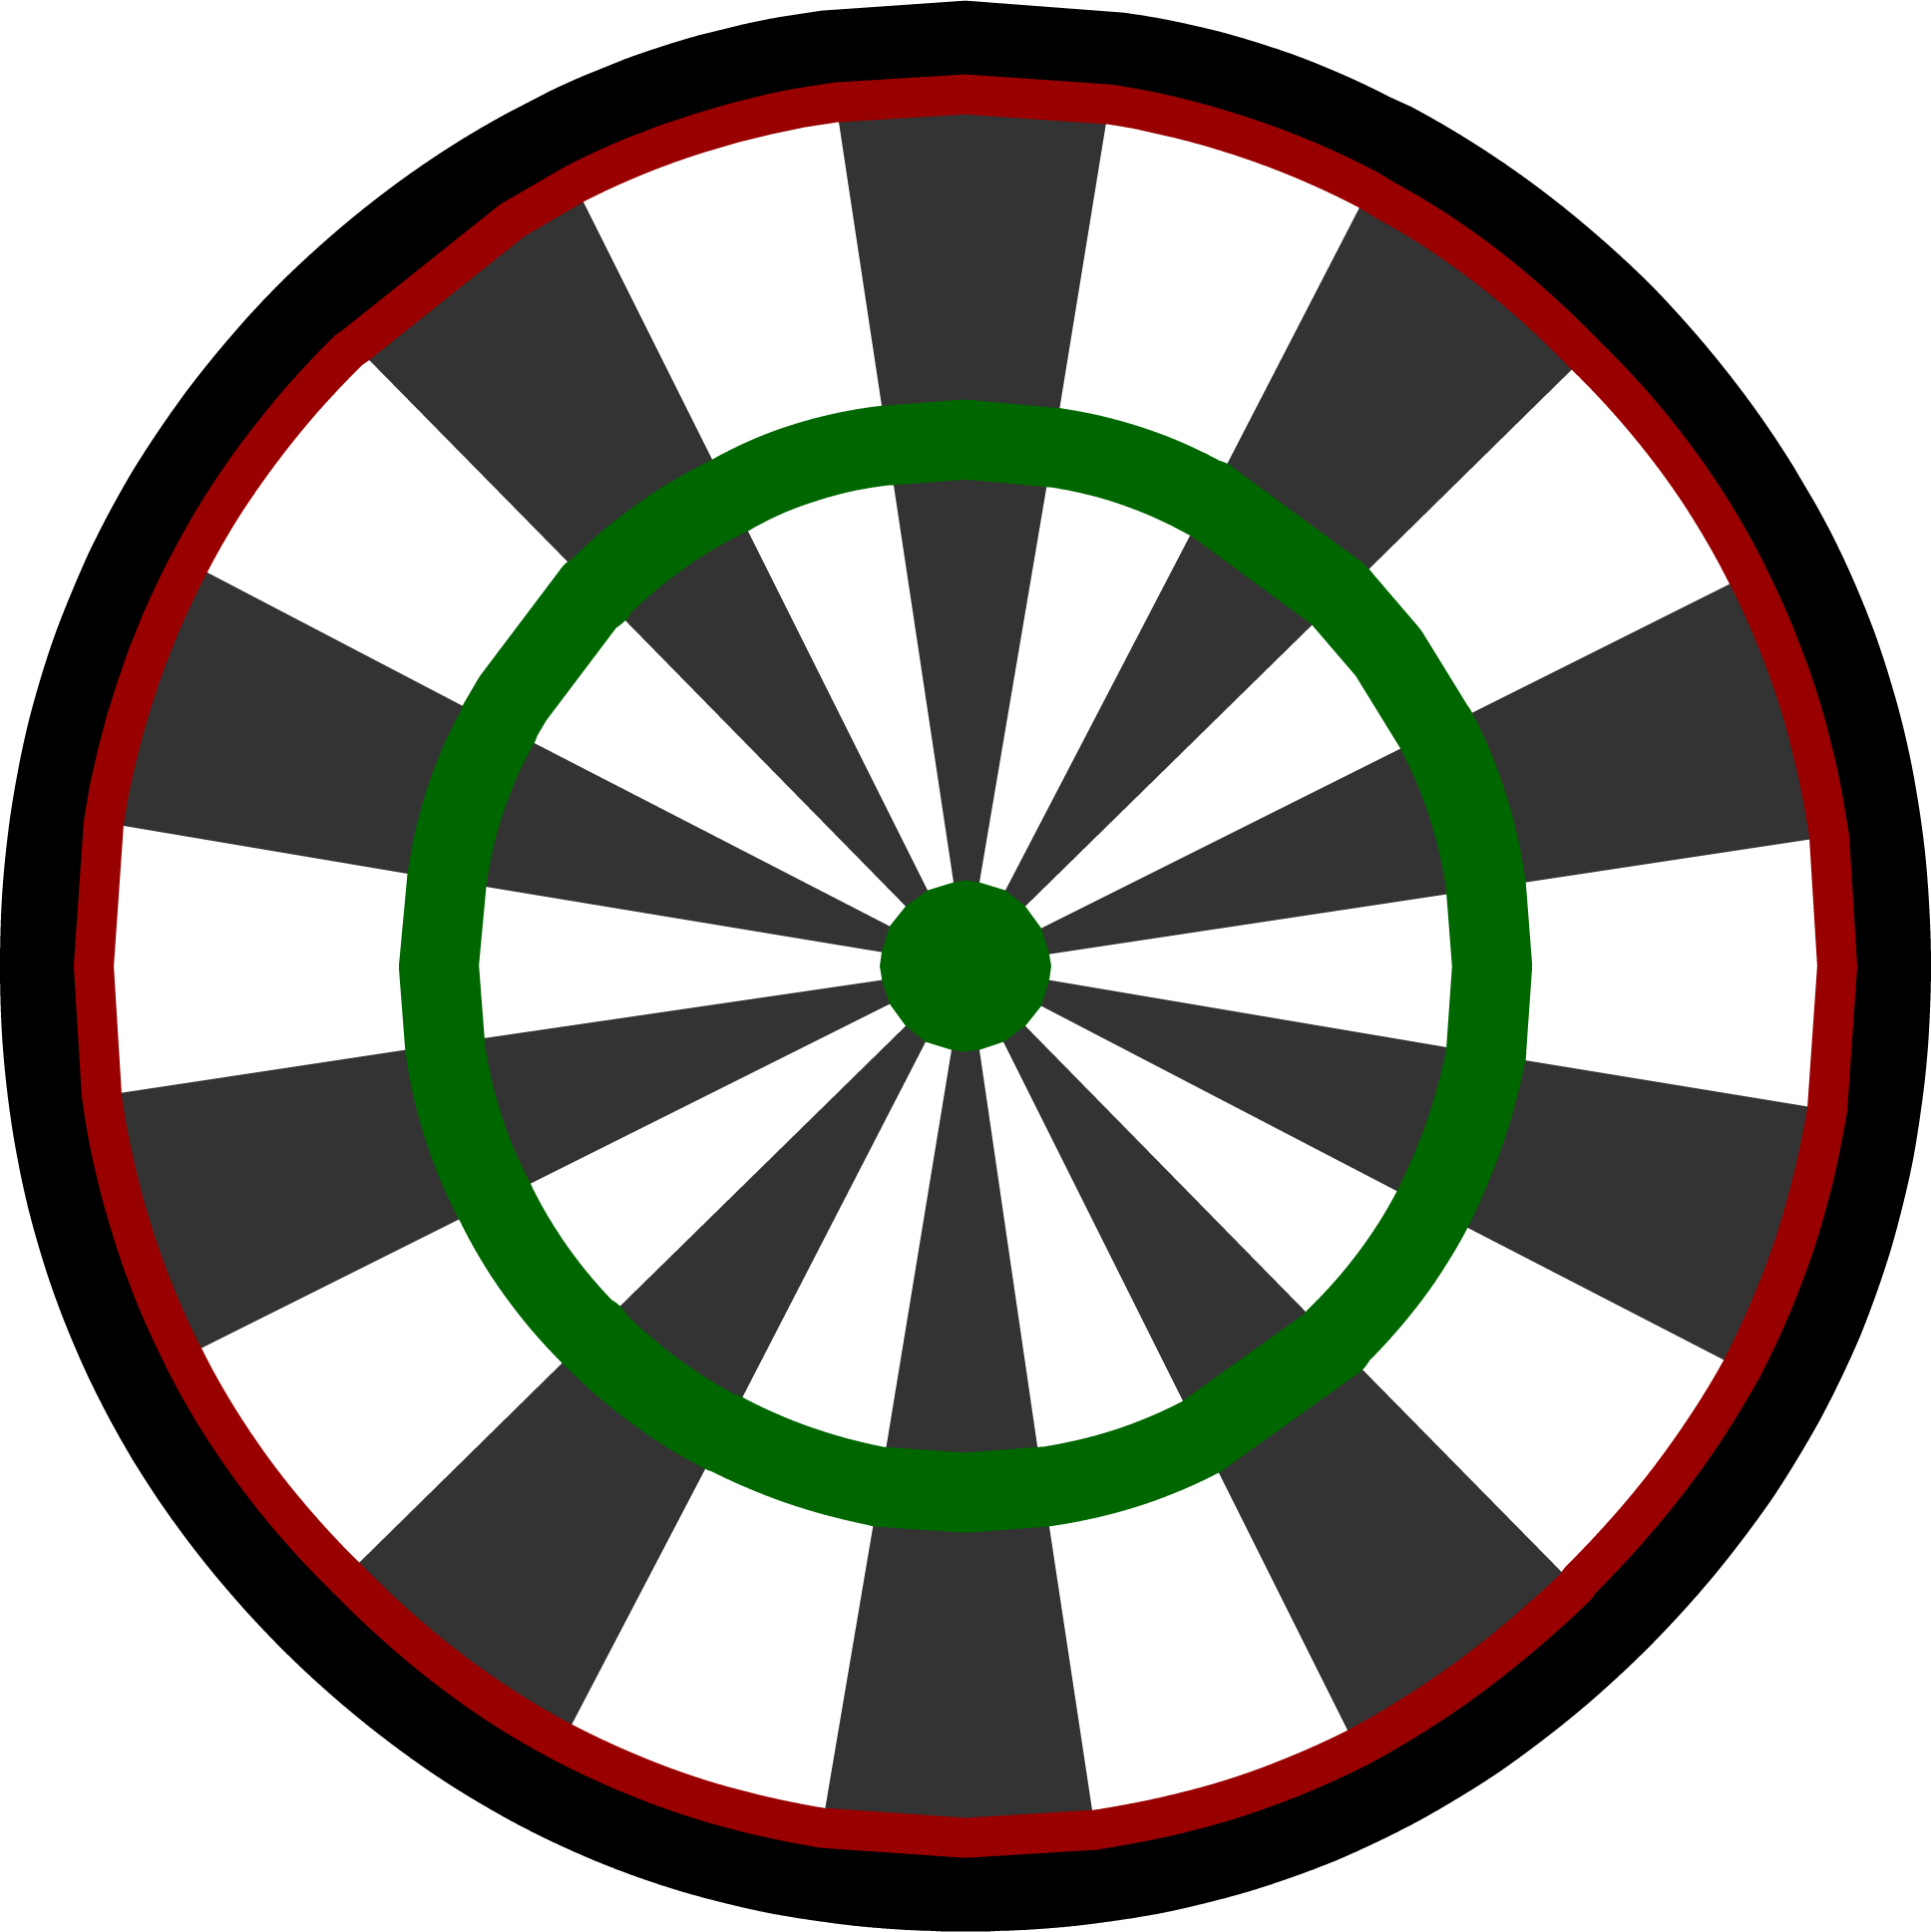 Dart drawing large. Darts clipart game graphics